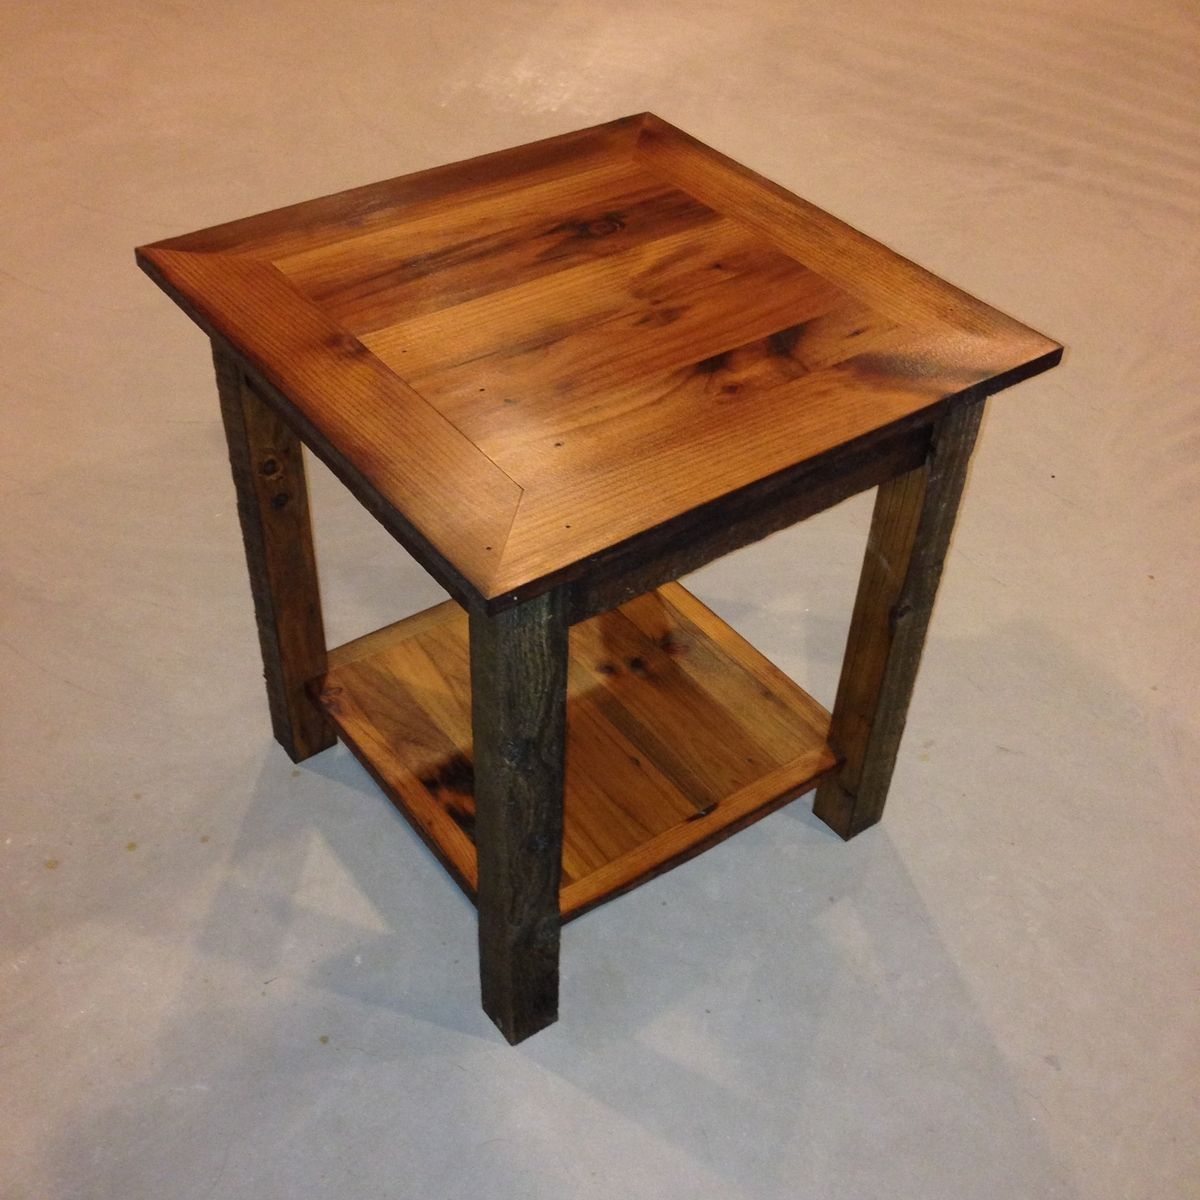 custom reclaimed barnwood end table ore dock design custommade accent entry decor ideas white glass side mirrored cocktail nightstand legs high gloss room essentials curtains ikea